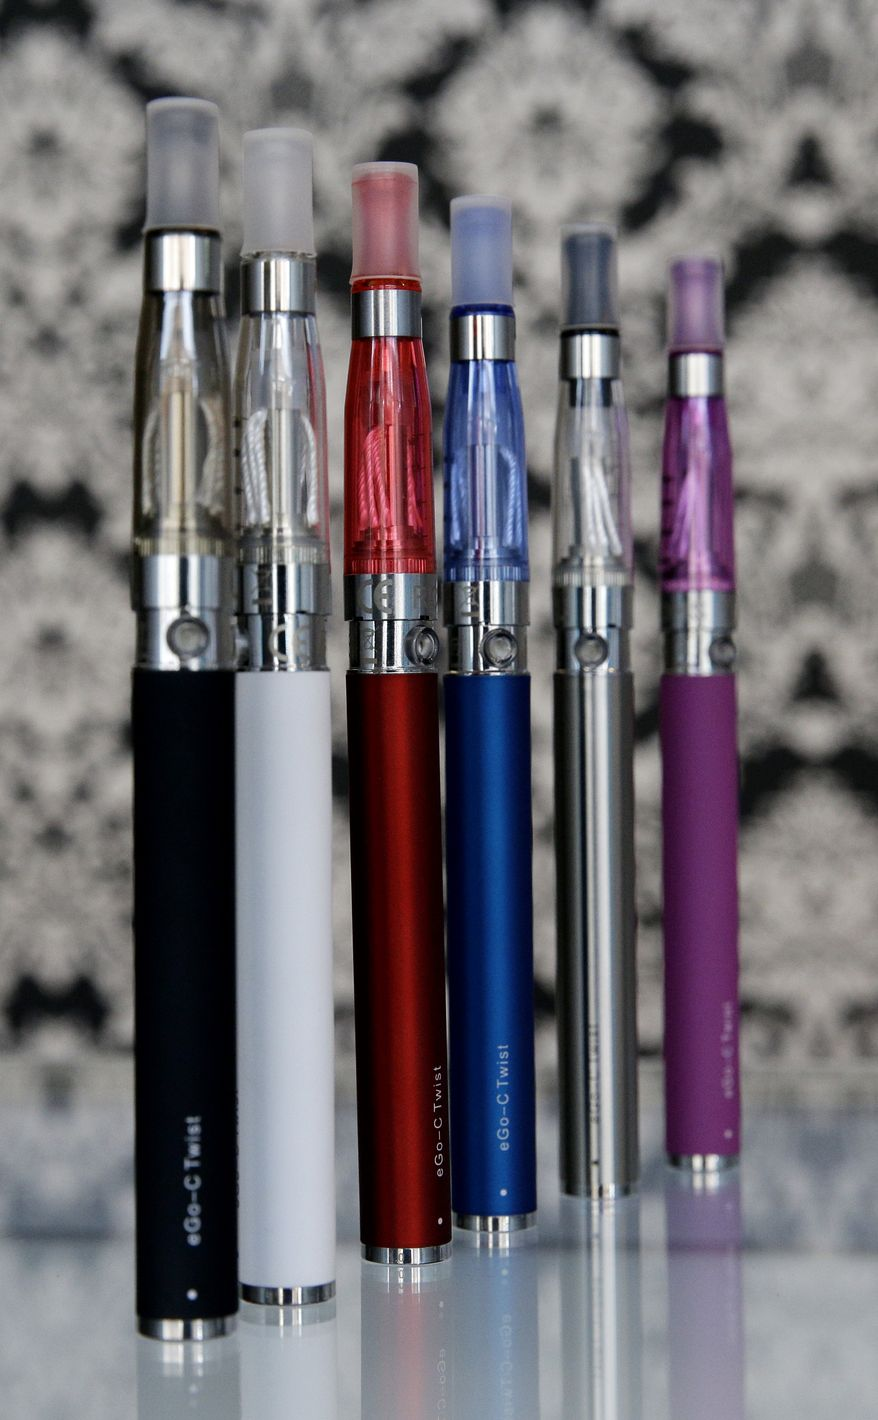 E-cigarettes appear on display at Vape store in Chicago, Wednesday, April 23, 2014. The federal government wants to ban sales of electronic cigarettes to minors and require approval for new products and health warning labels under regulations being proposed by the Food and Drug Administration. (AP Photo/Nam Y. Huh)